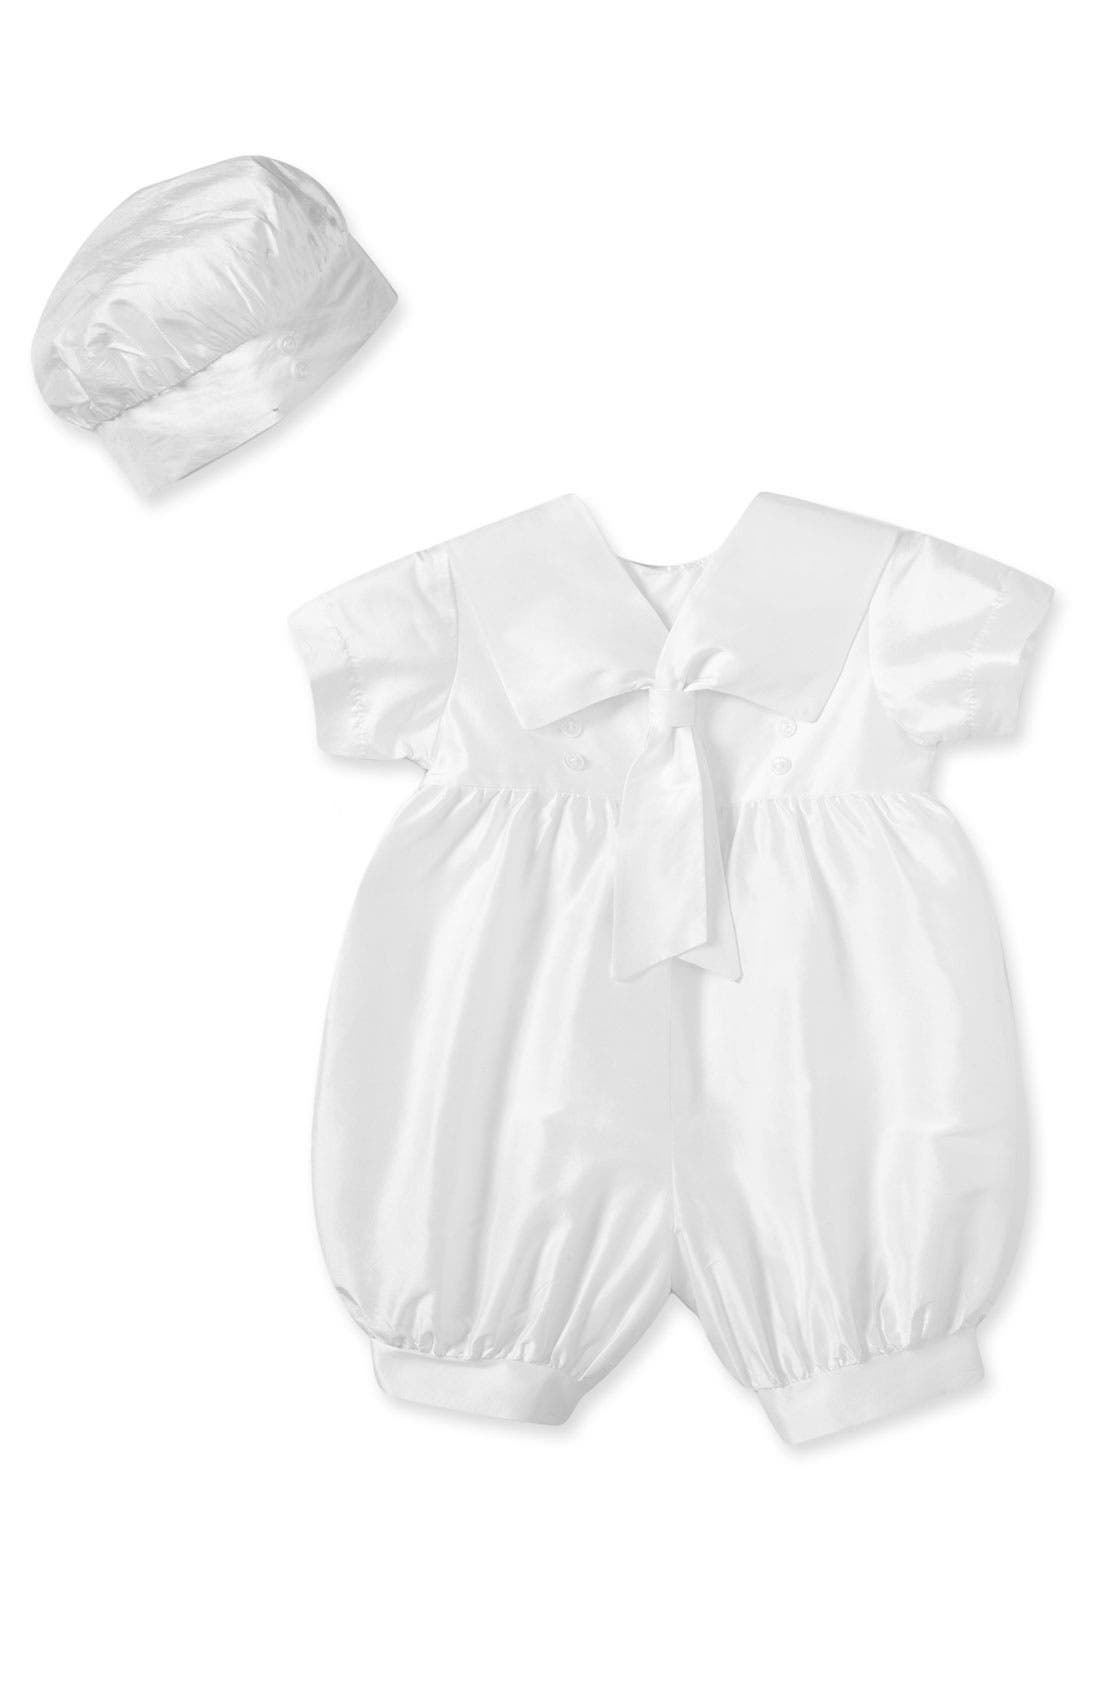 Alternate Image 1 Selected - Little Things Mean a Lot Christening Romper (Baby)